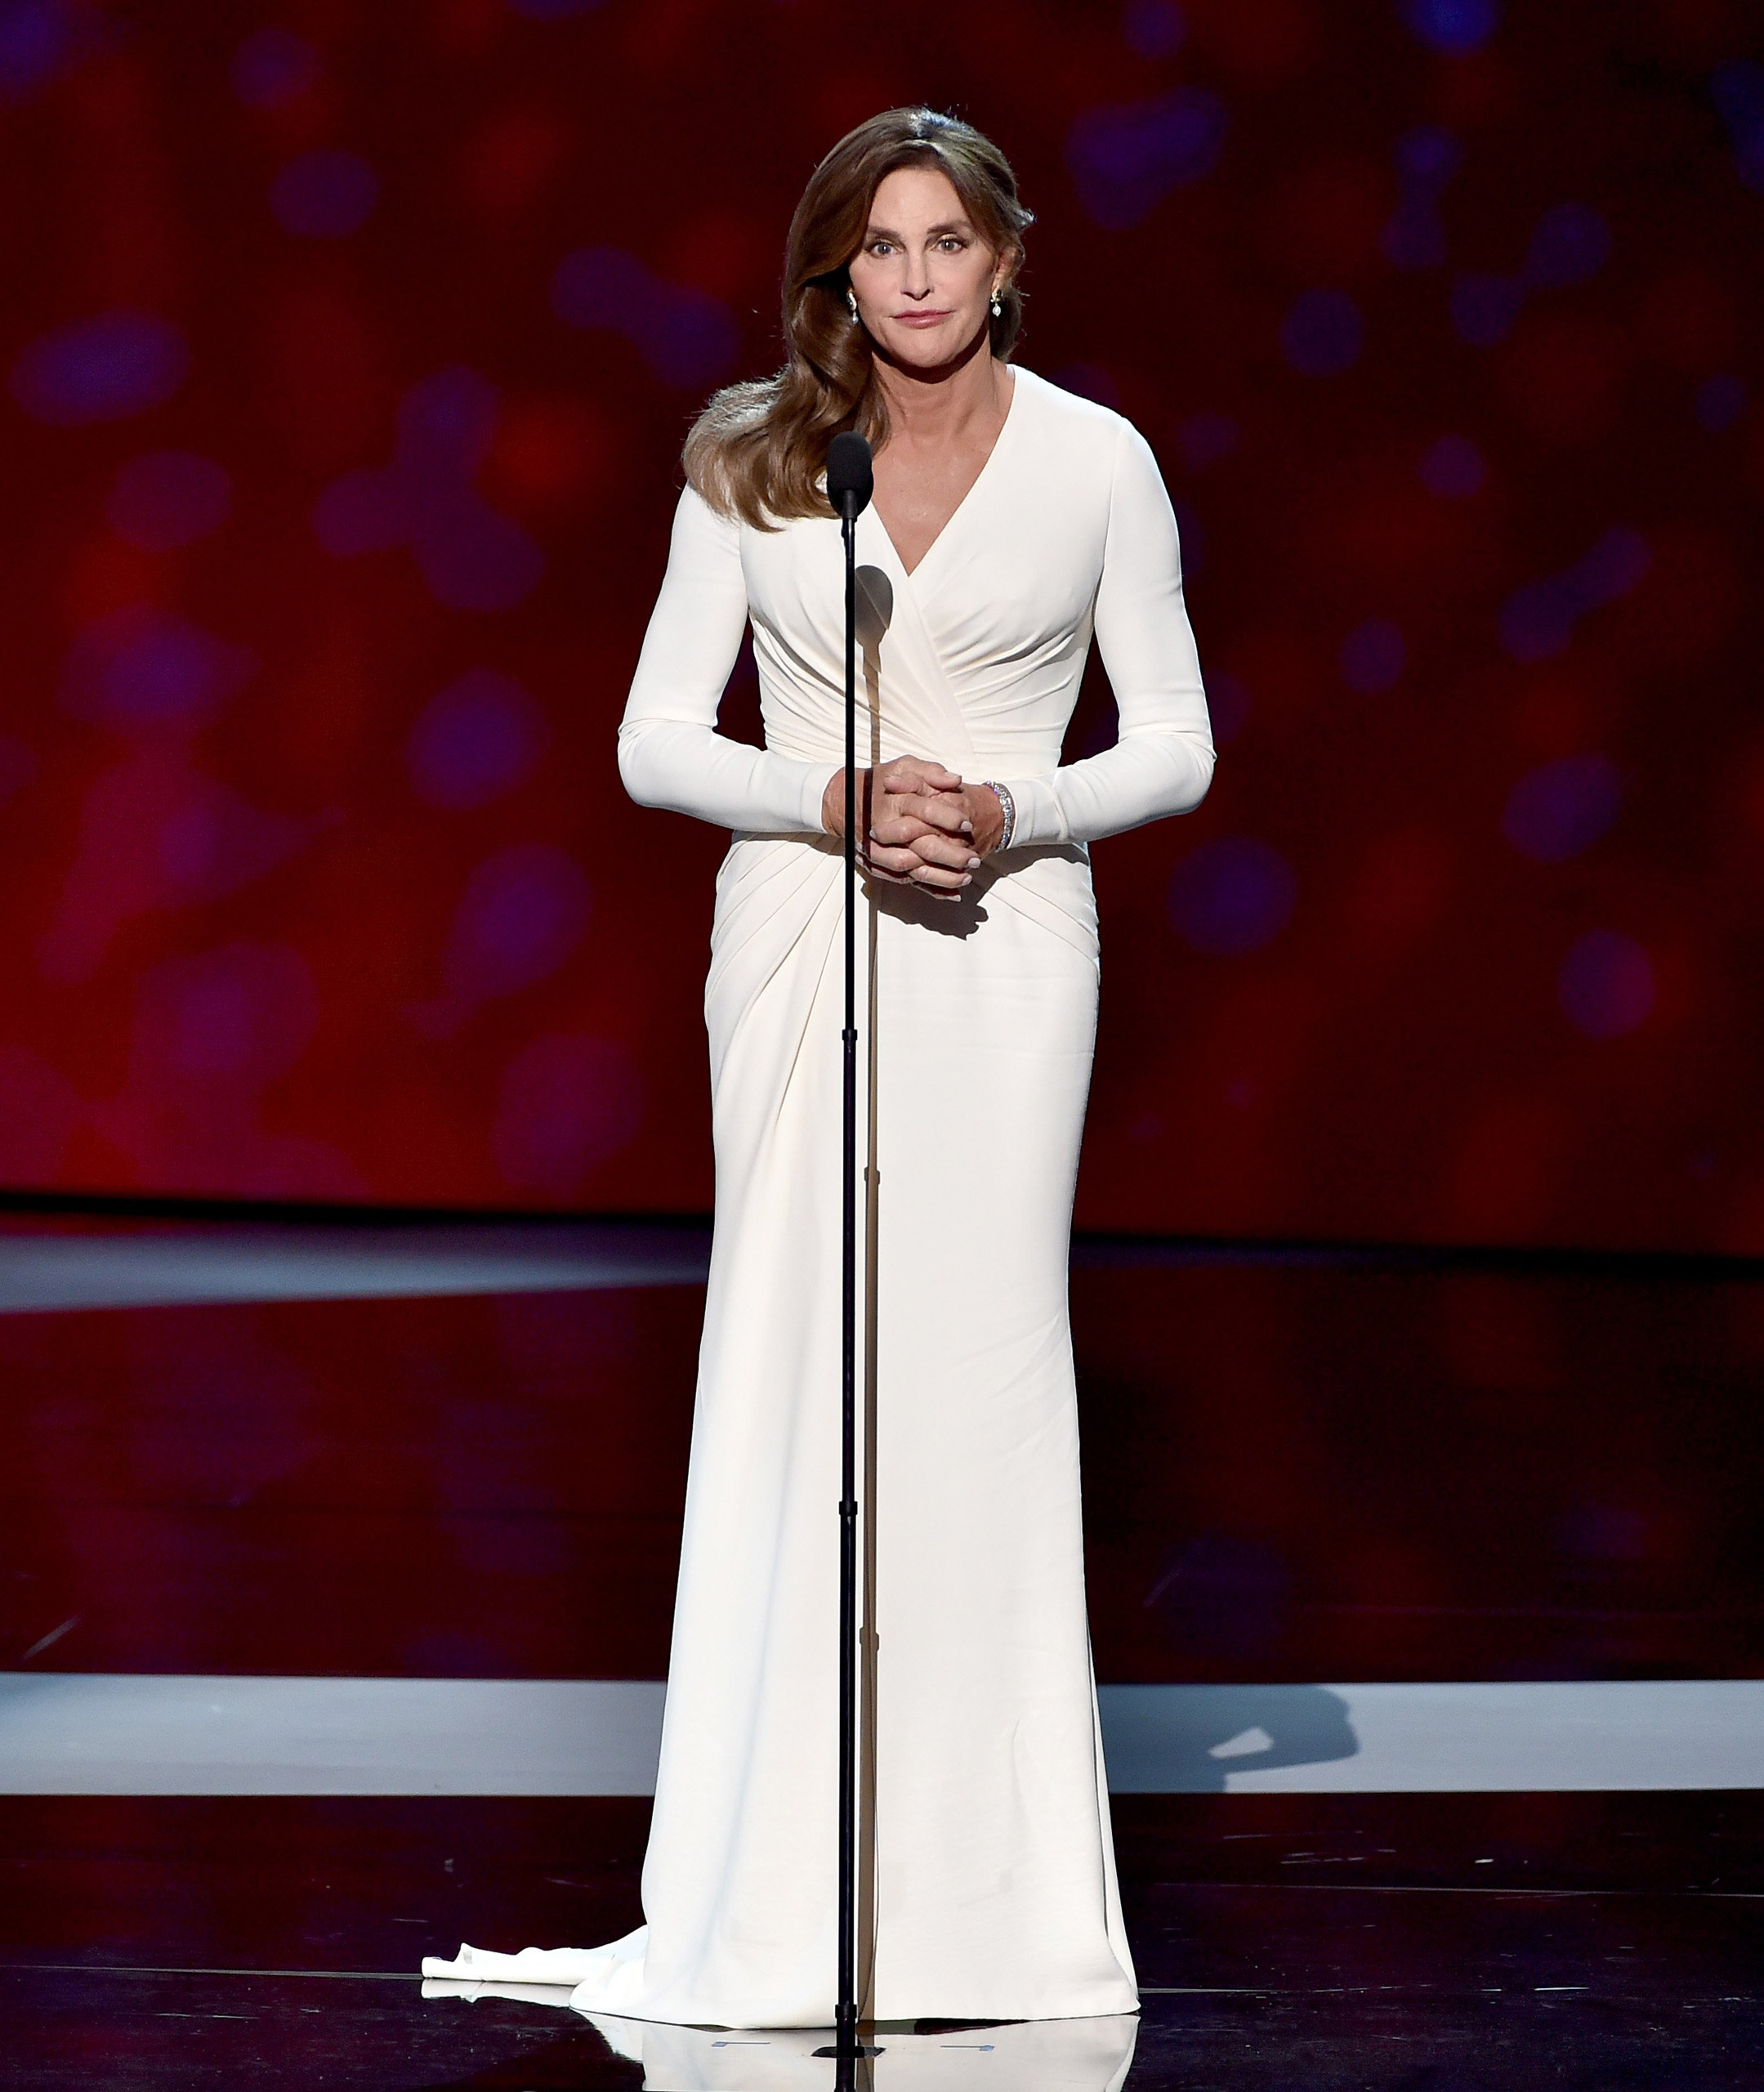 Caitlyn Jenner accepts the Arthur Ashe Courage Award onstage during The 2015 ESPYS at Microsoft Theater on July 15, 2015 in Los Angeles.